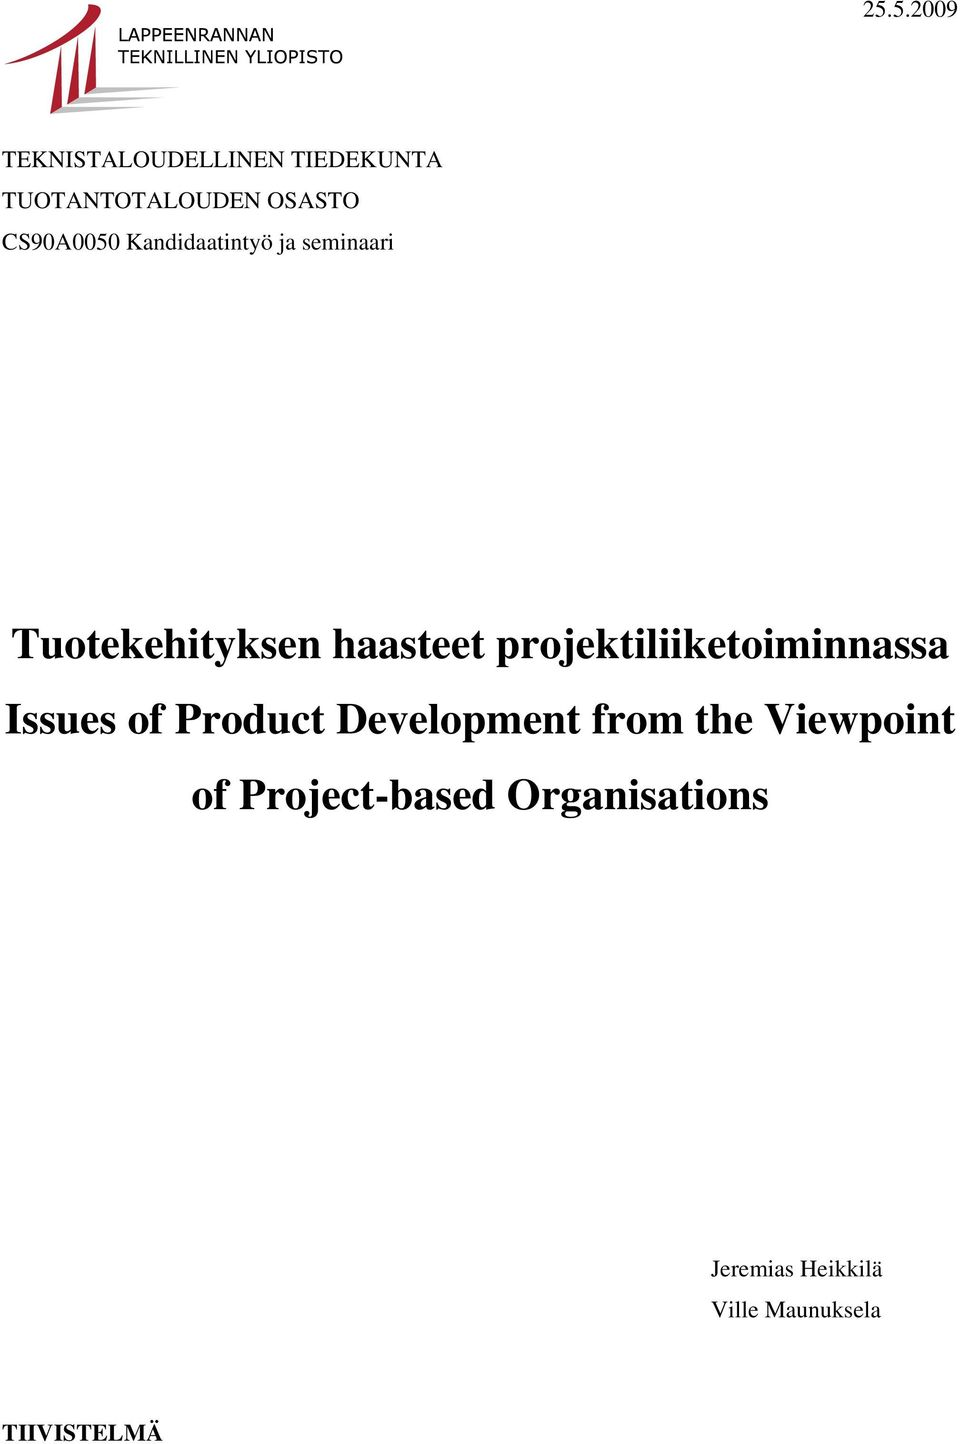 projektiliiketoiminnassa Issues of Product Development from the